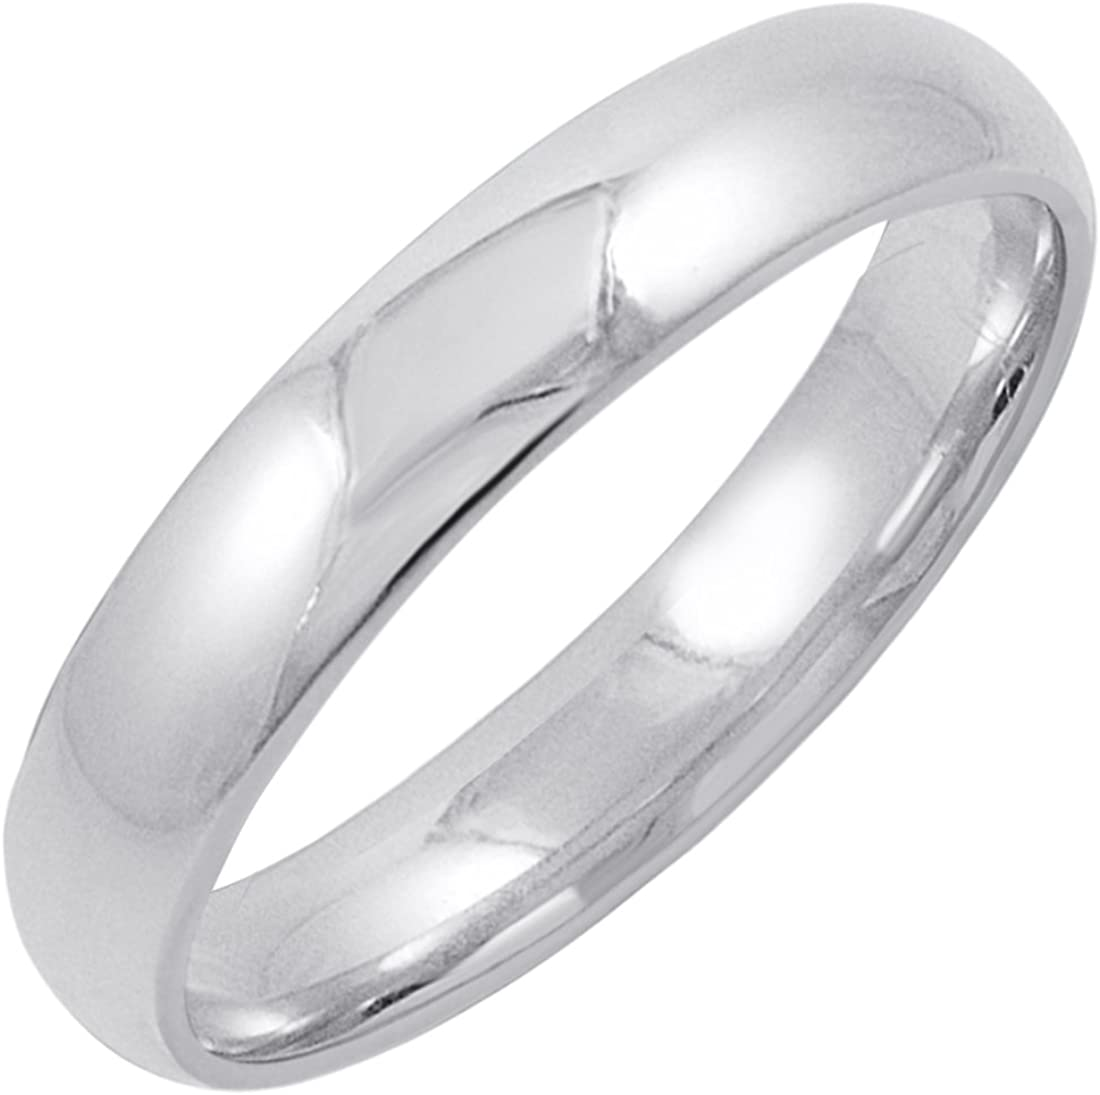 Men's 14K Yellow or White Gold Solid 4mm Comfort Fit Plain Wedding Band (Available Ring Sizes 8-12 1/2)